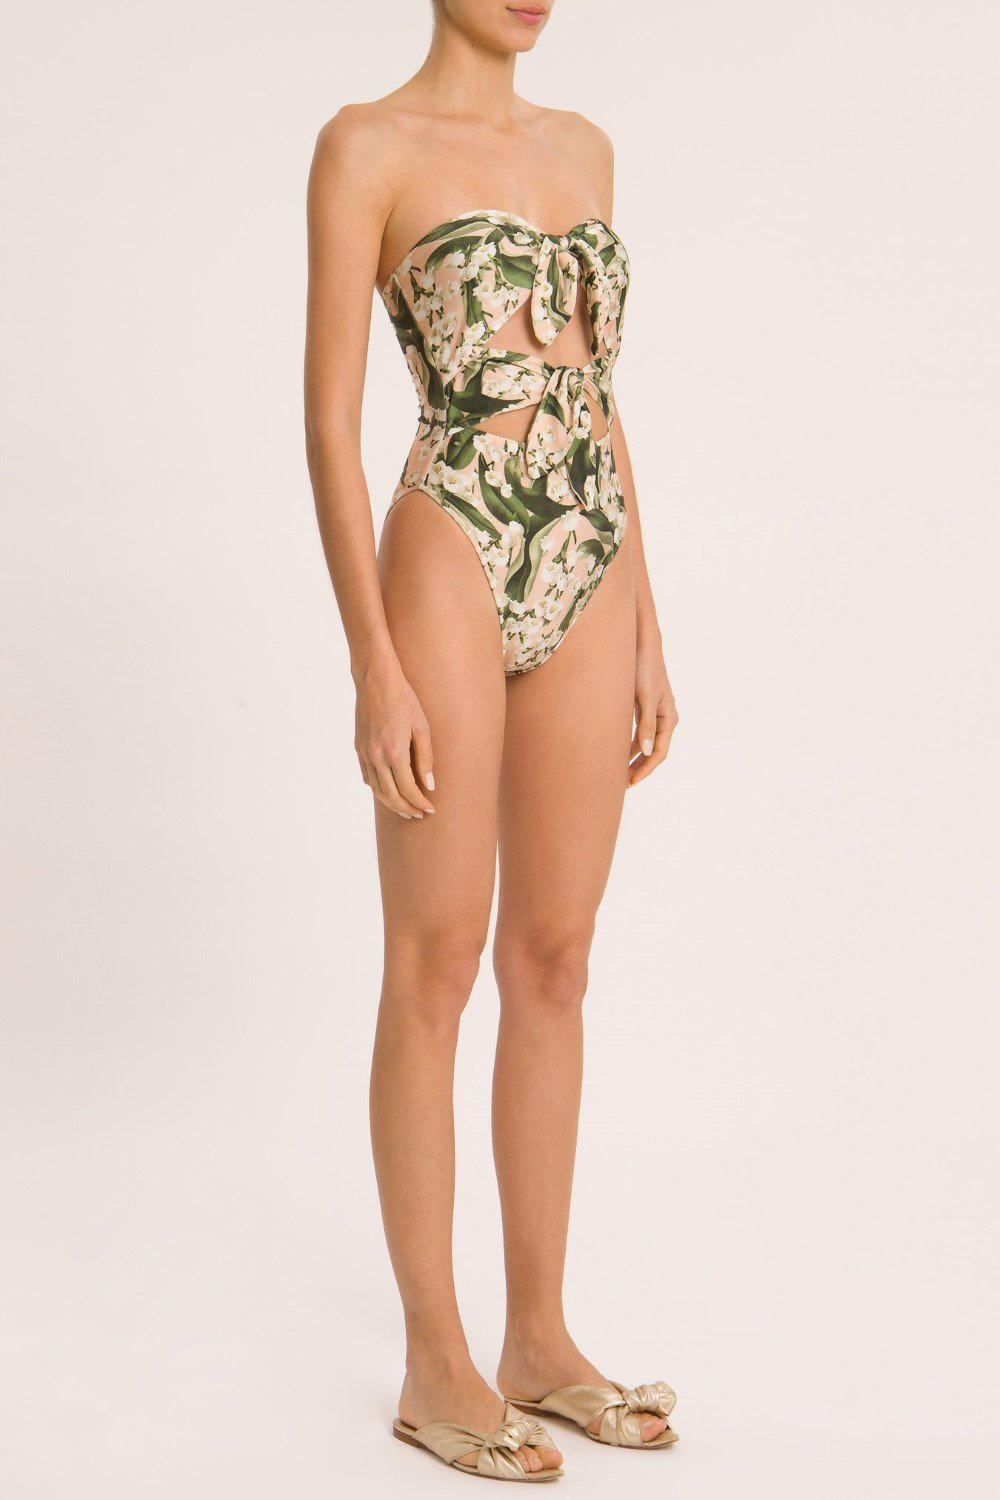 Muguet Strapless High-Leg Swimsuit With Double Knot